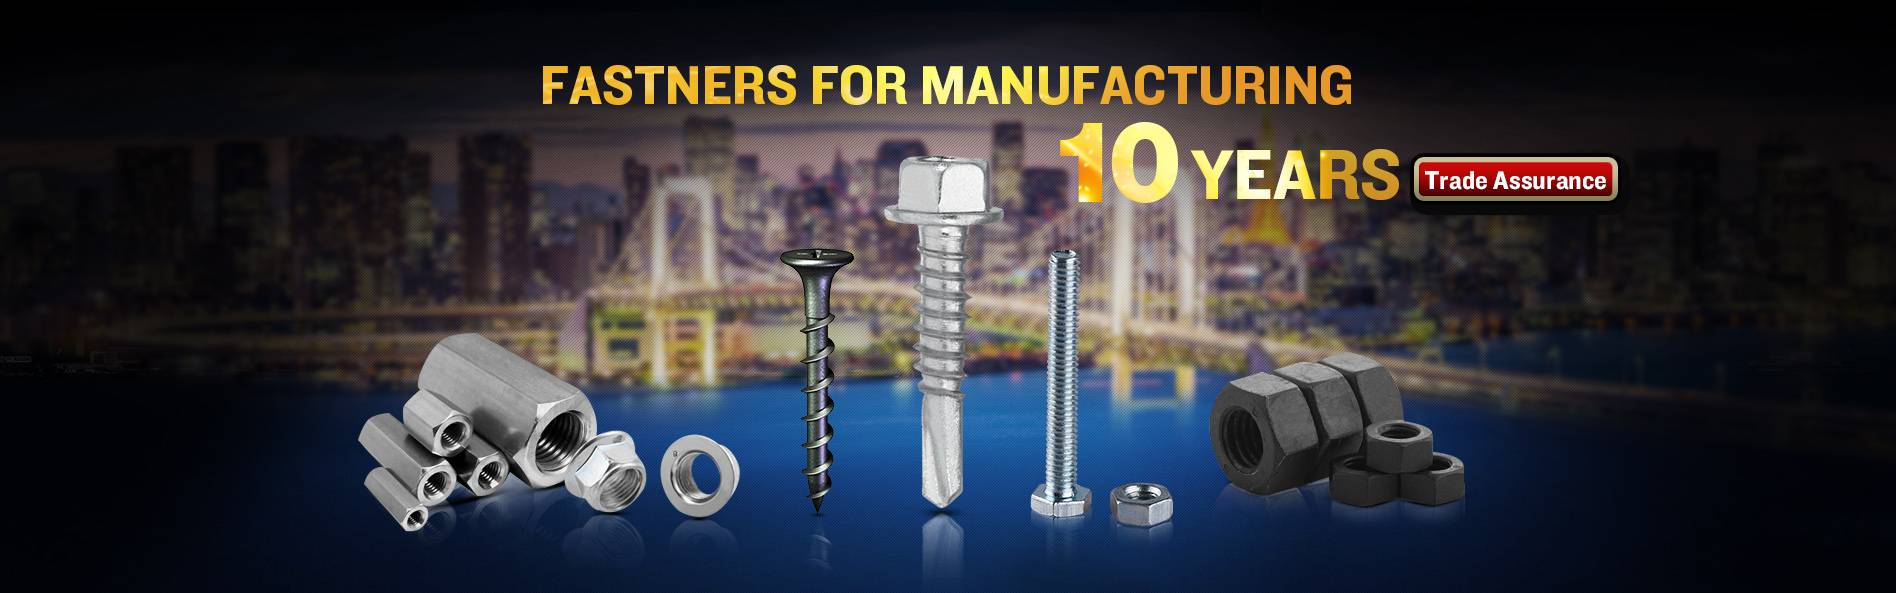 China Supply Black Drywall Screws Manufacturers and Suppliers